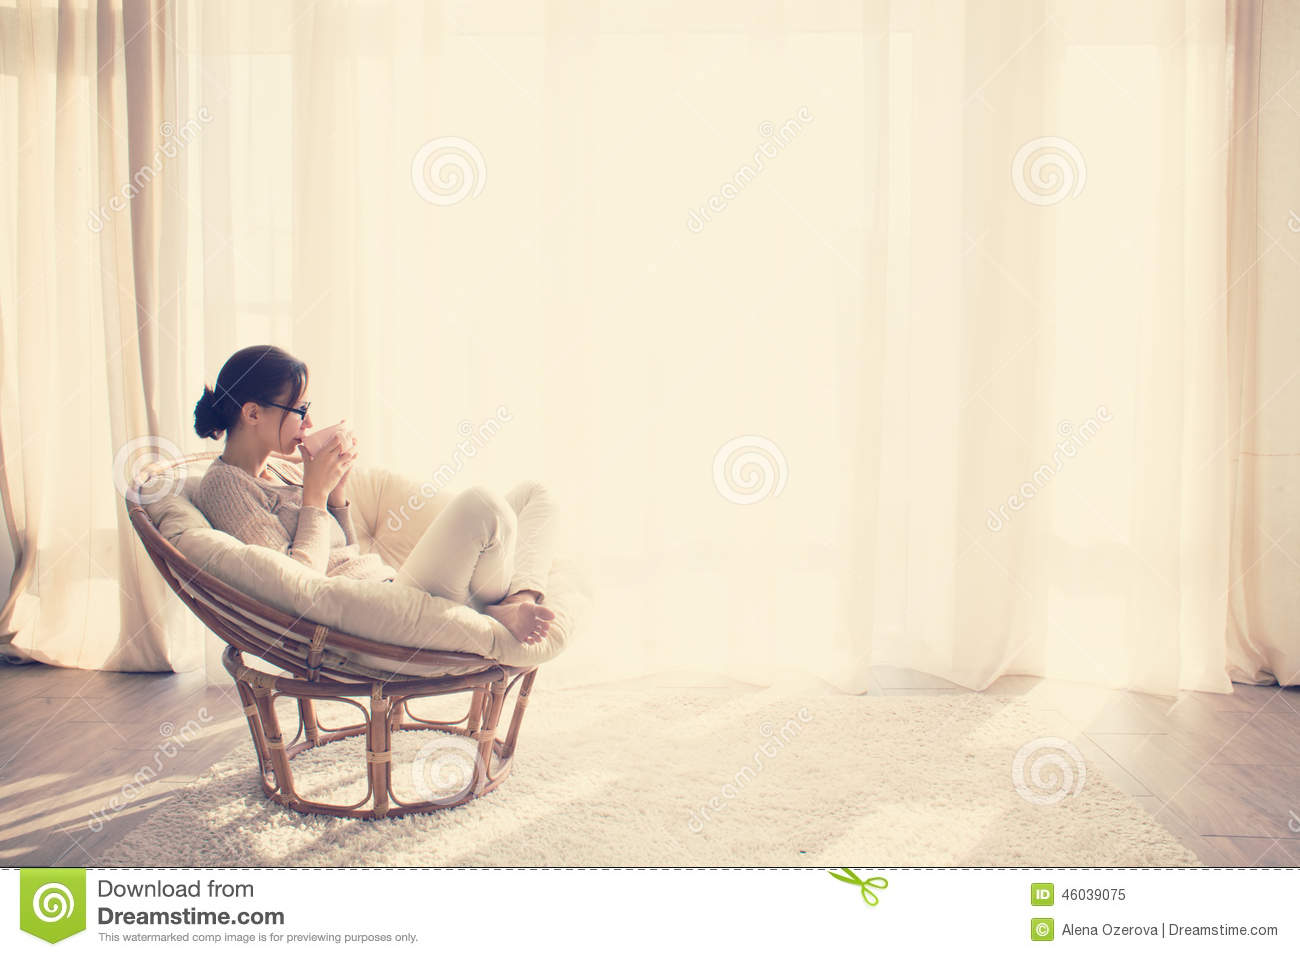 Woman Relaxing In Chair Stock Image Image Of Interior 46039075